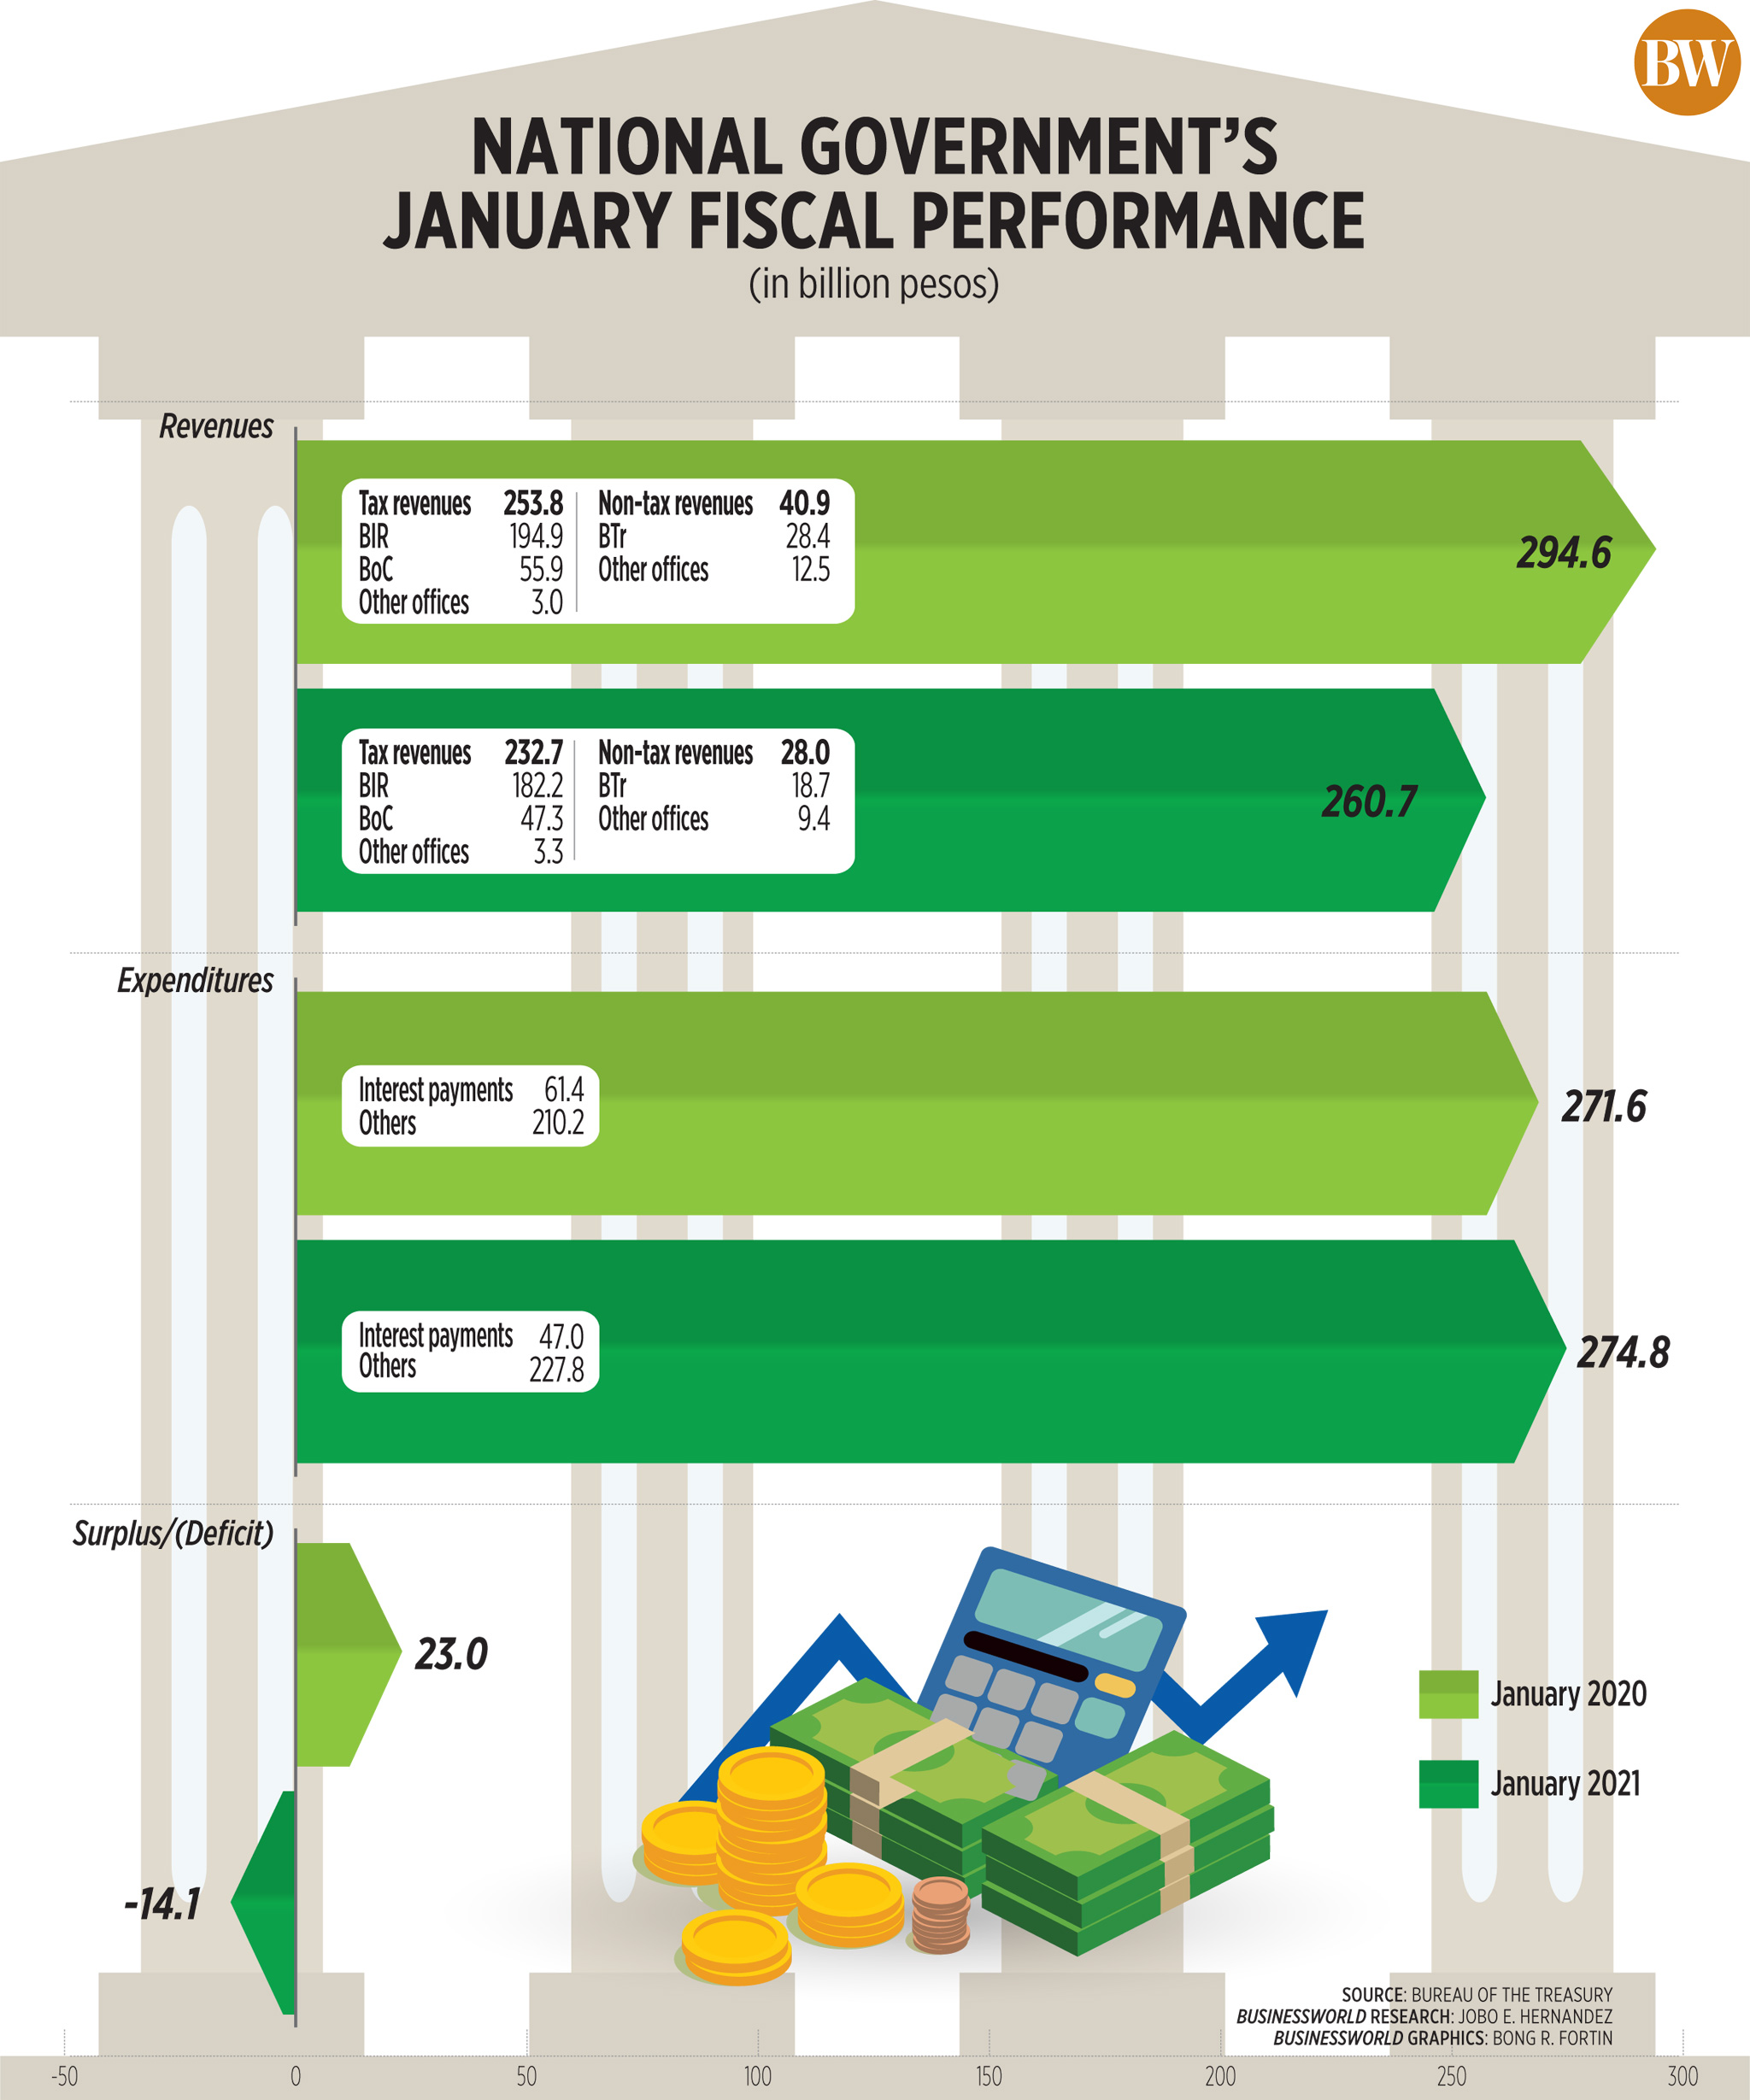 National Government January Fiscal Performance (2021)